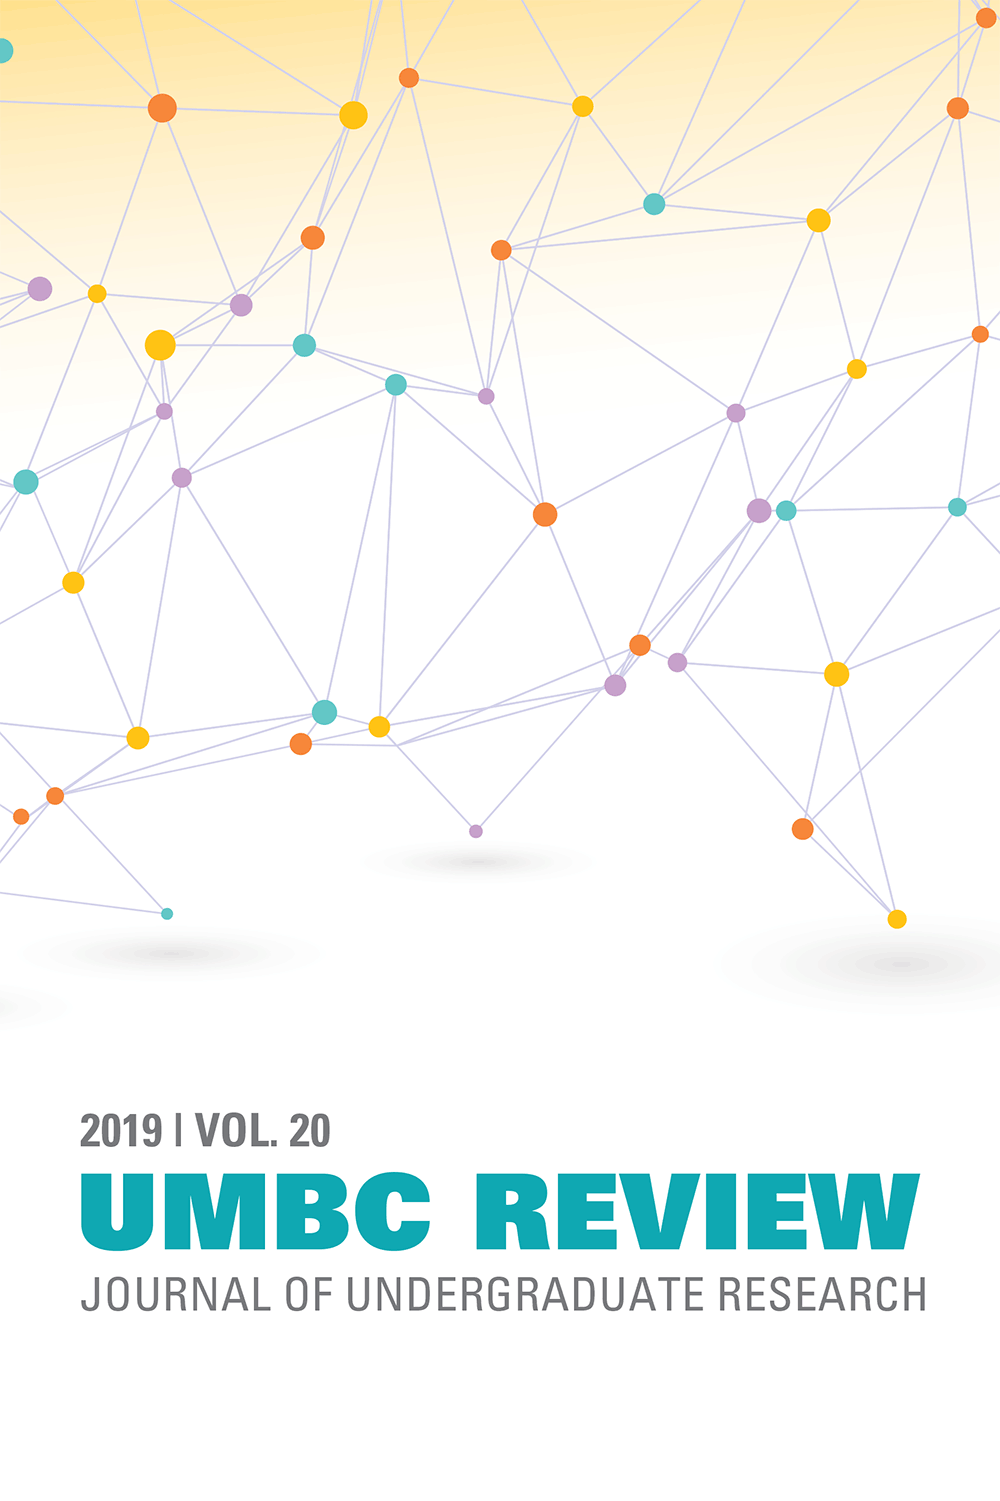 UMBC Review 2019 cover